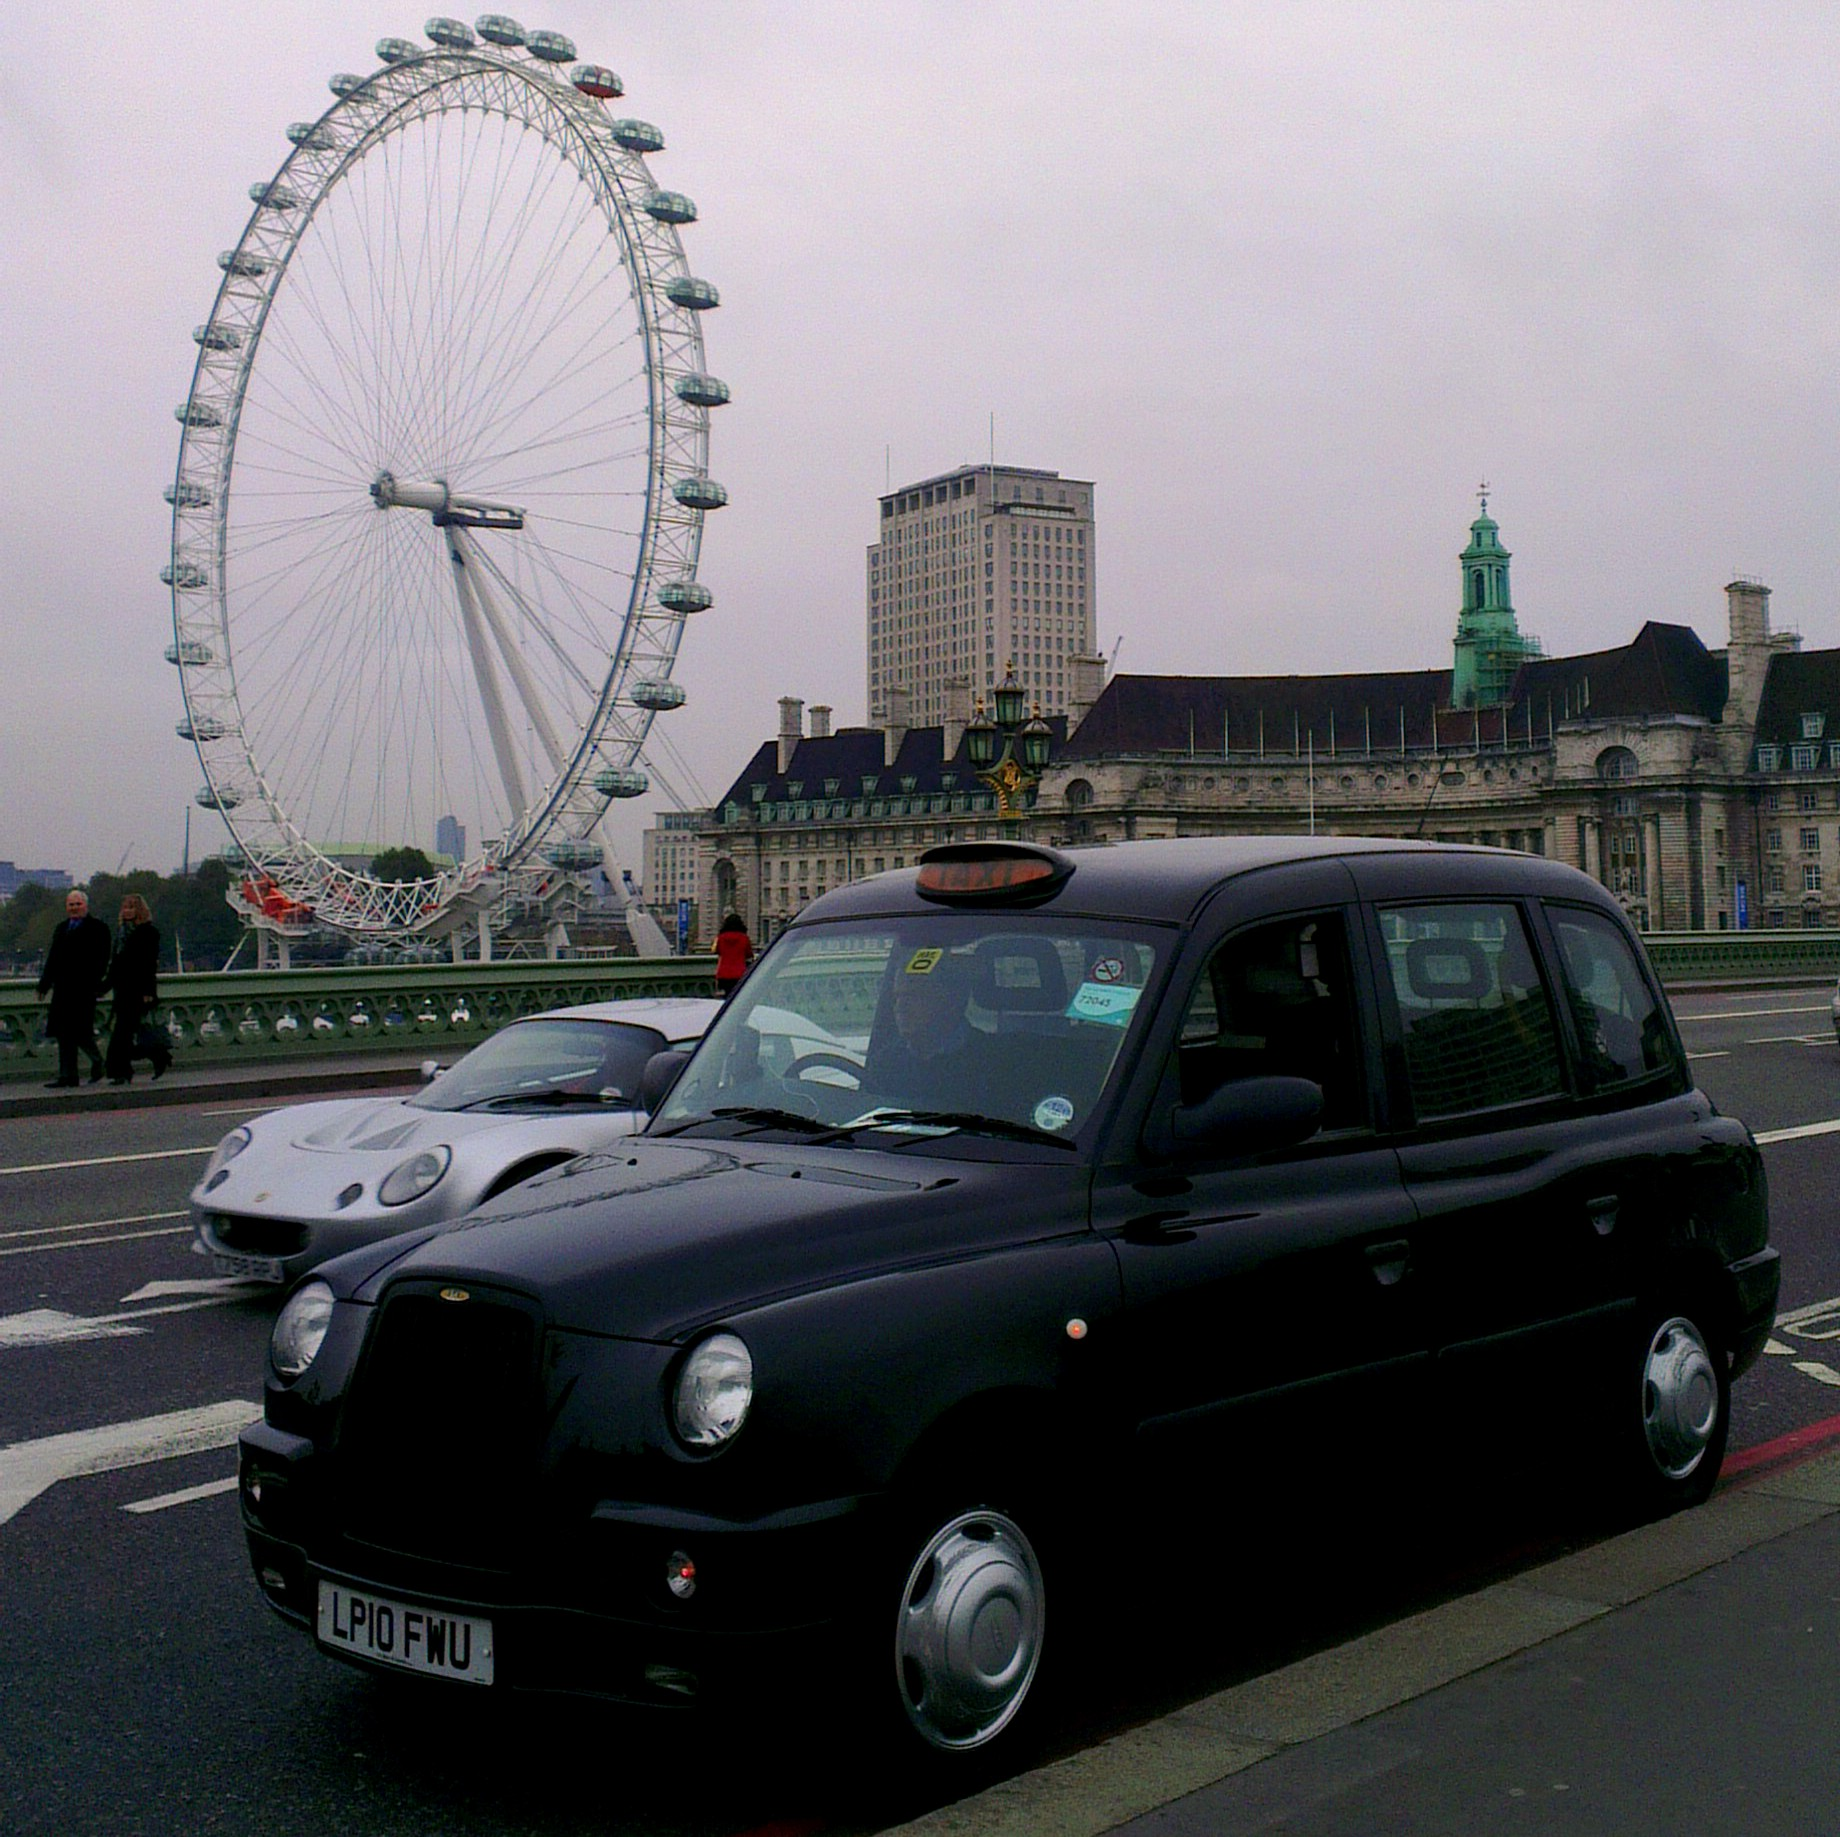 london_eye_cab